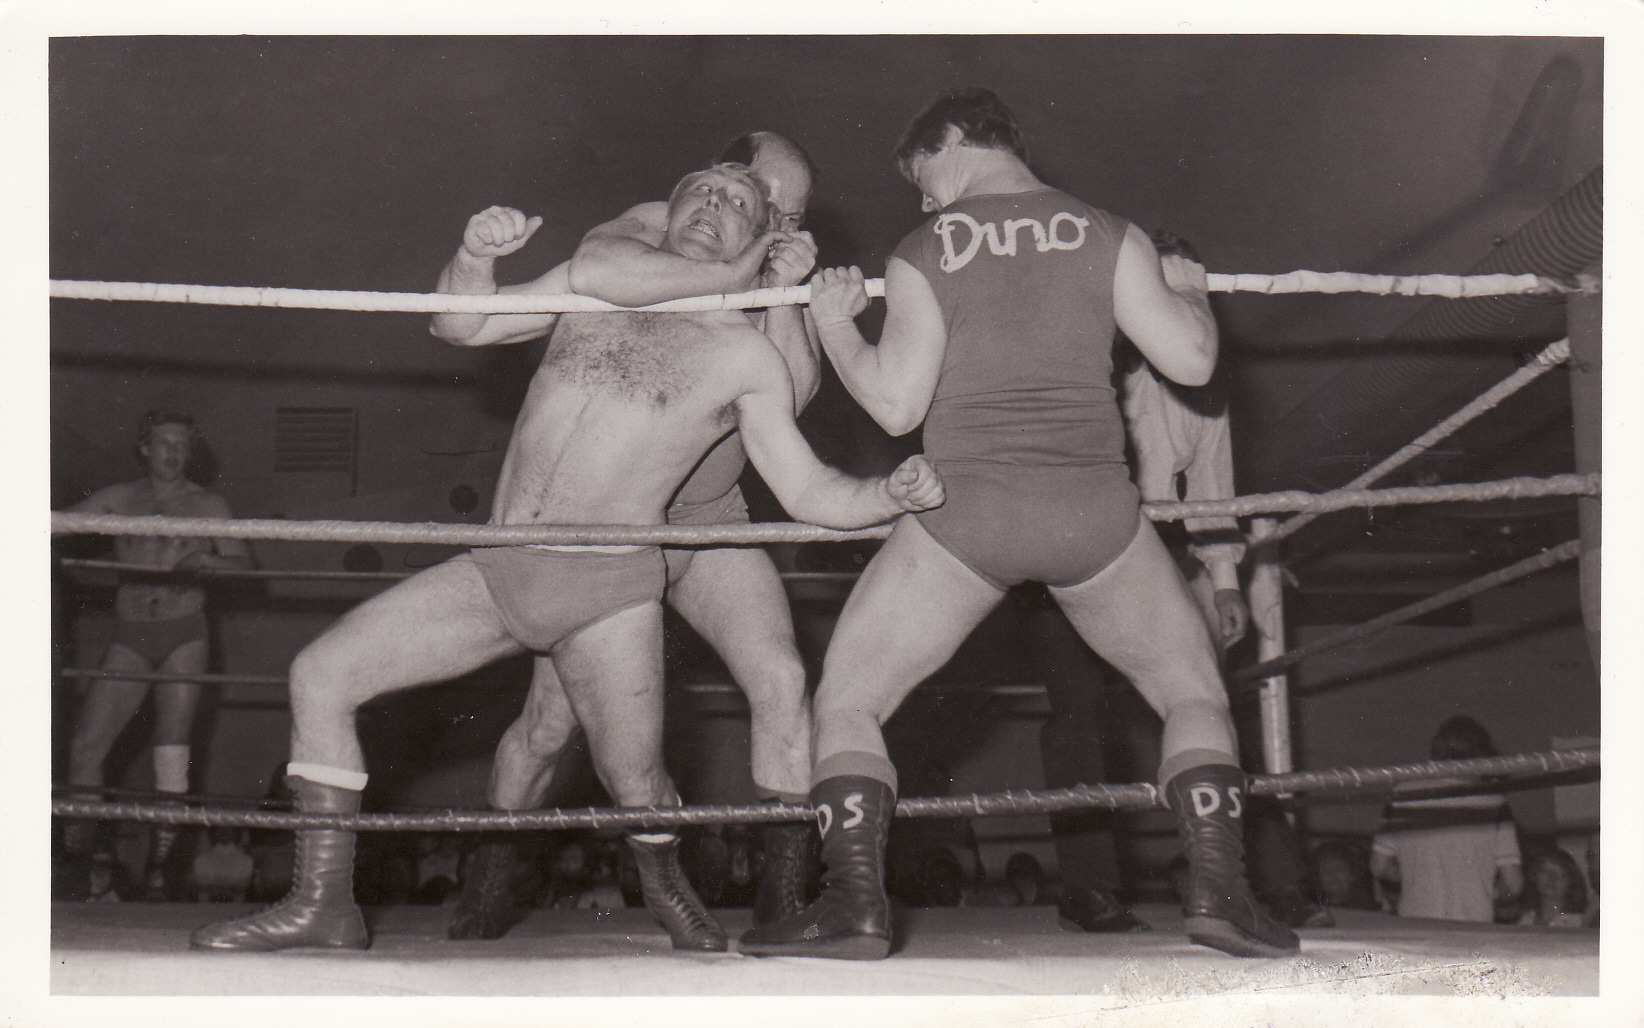 Tony and Dino Scarlo